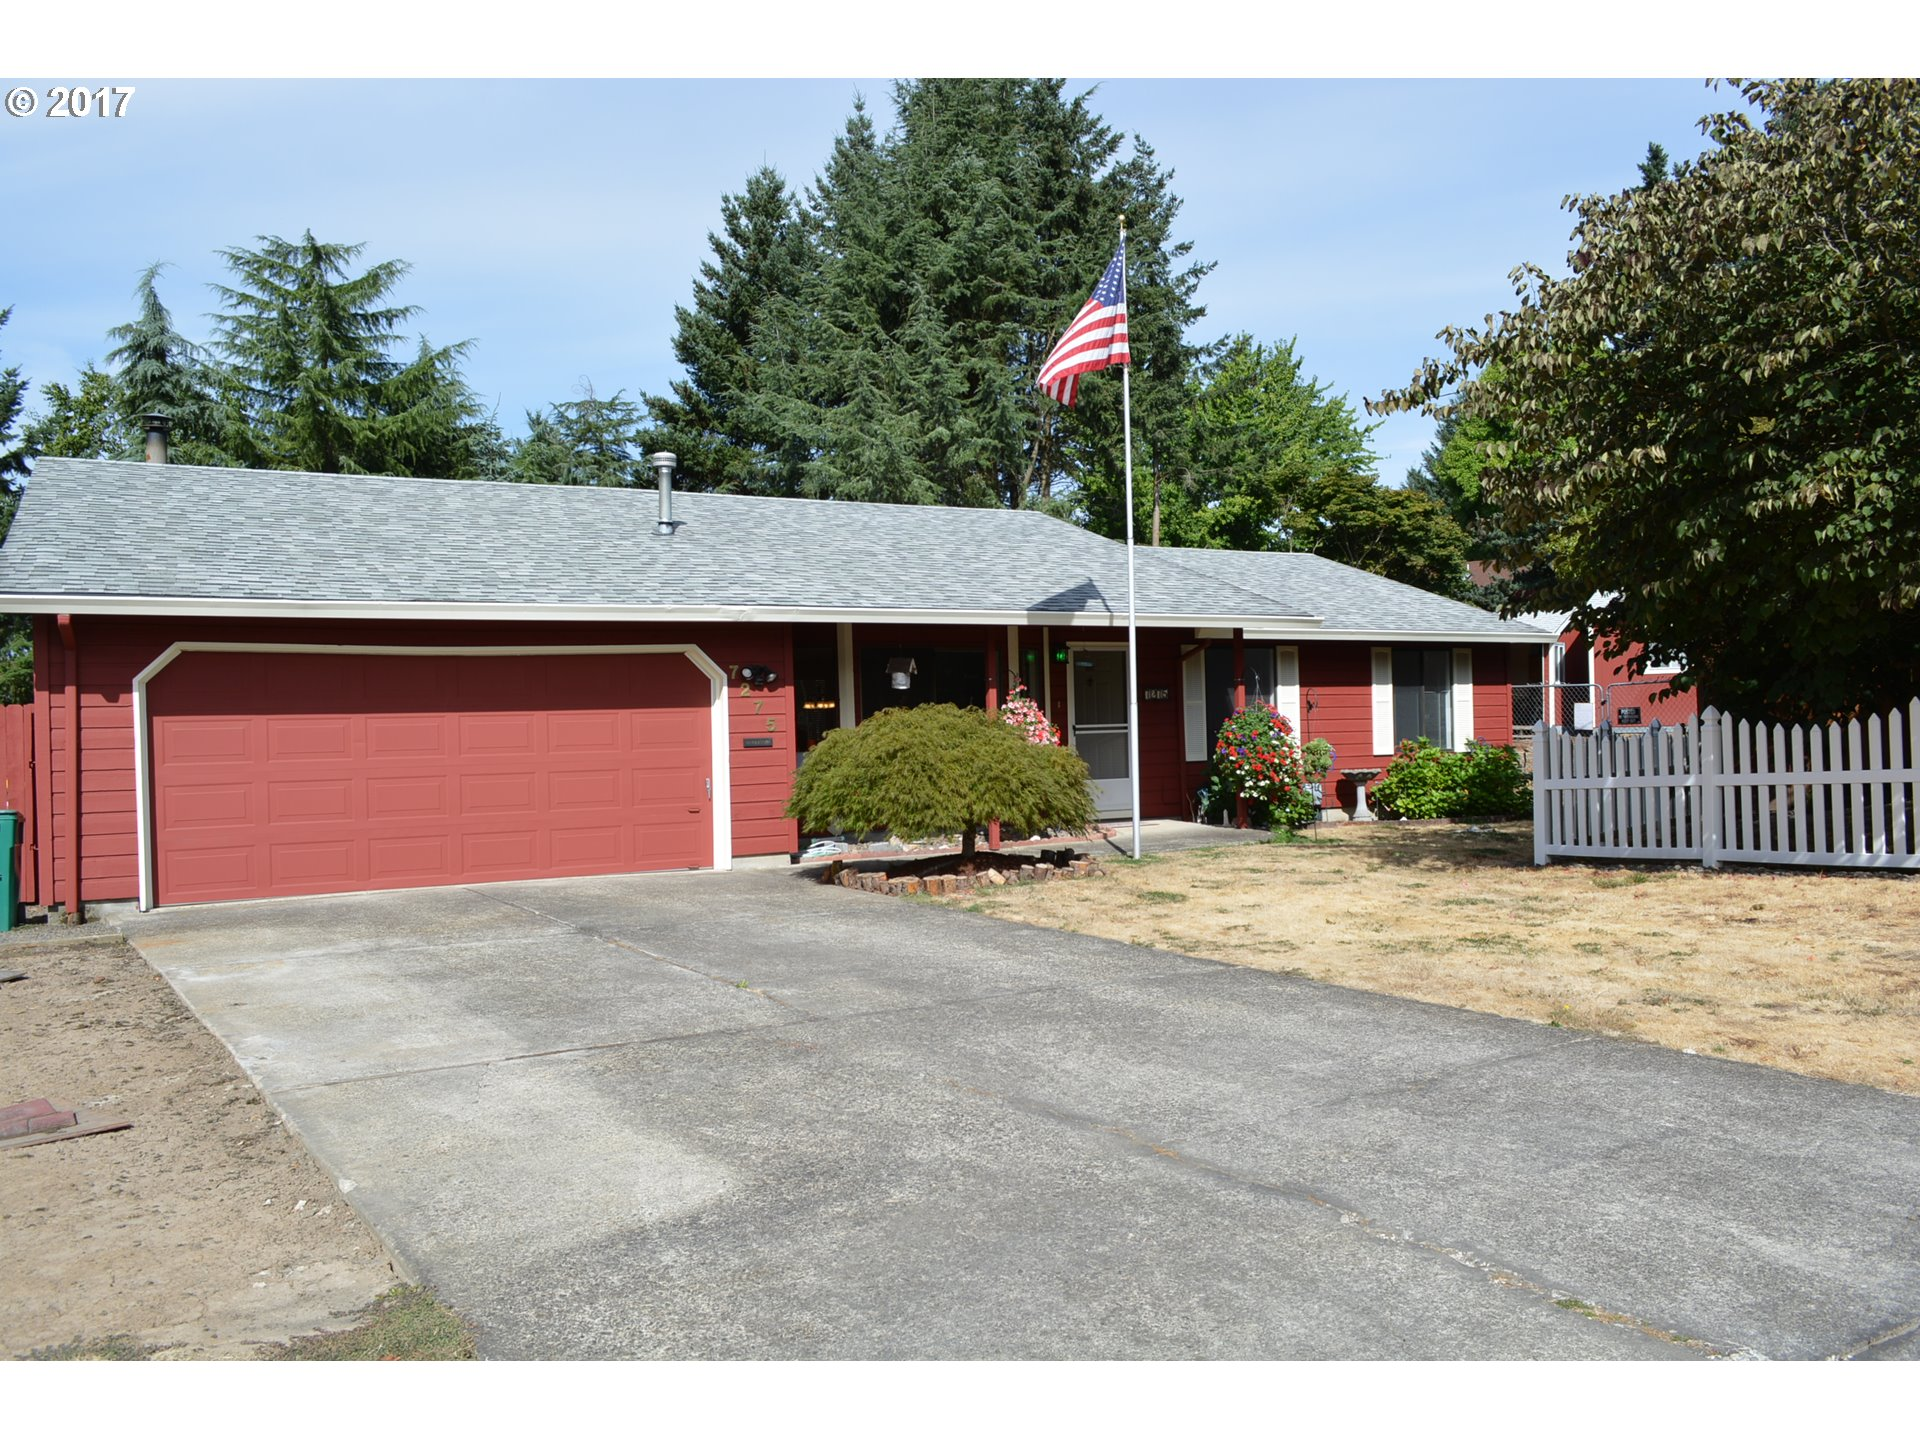 1 level living on .29 Acre lot on Cul-de-sac! Private setting, super long driveway for parking RV or numerous cars. Well insulated this solid built home is well cared for. 3 BD, 2 BA, 1485 SF feels larger w/its open floorplan! Spacious kit, LR + DR; Kit+ FAM RM combos! Spacious Master Bdrm, Walk-in Shower in master Ba. Certified woodstove! Lots of storage w/2 sheds & wood cover on side of home. AC too! Carpet Allowance! Motivated seller